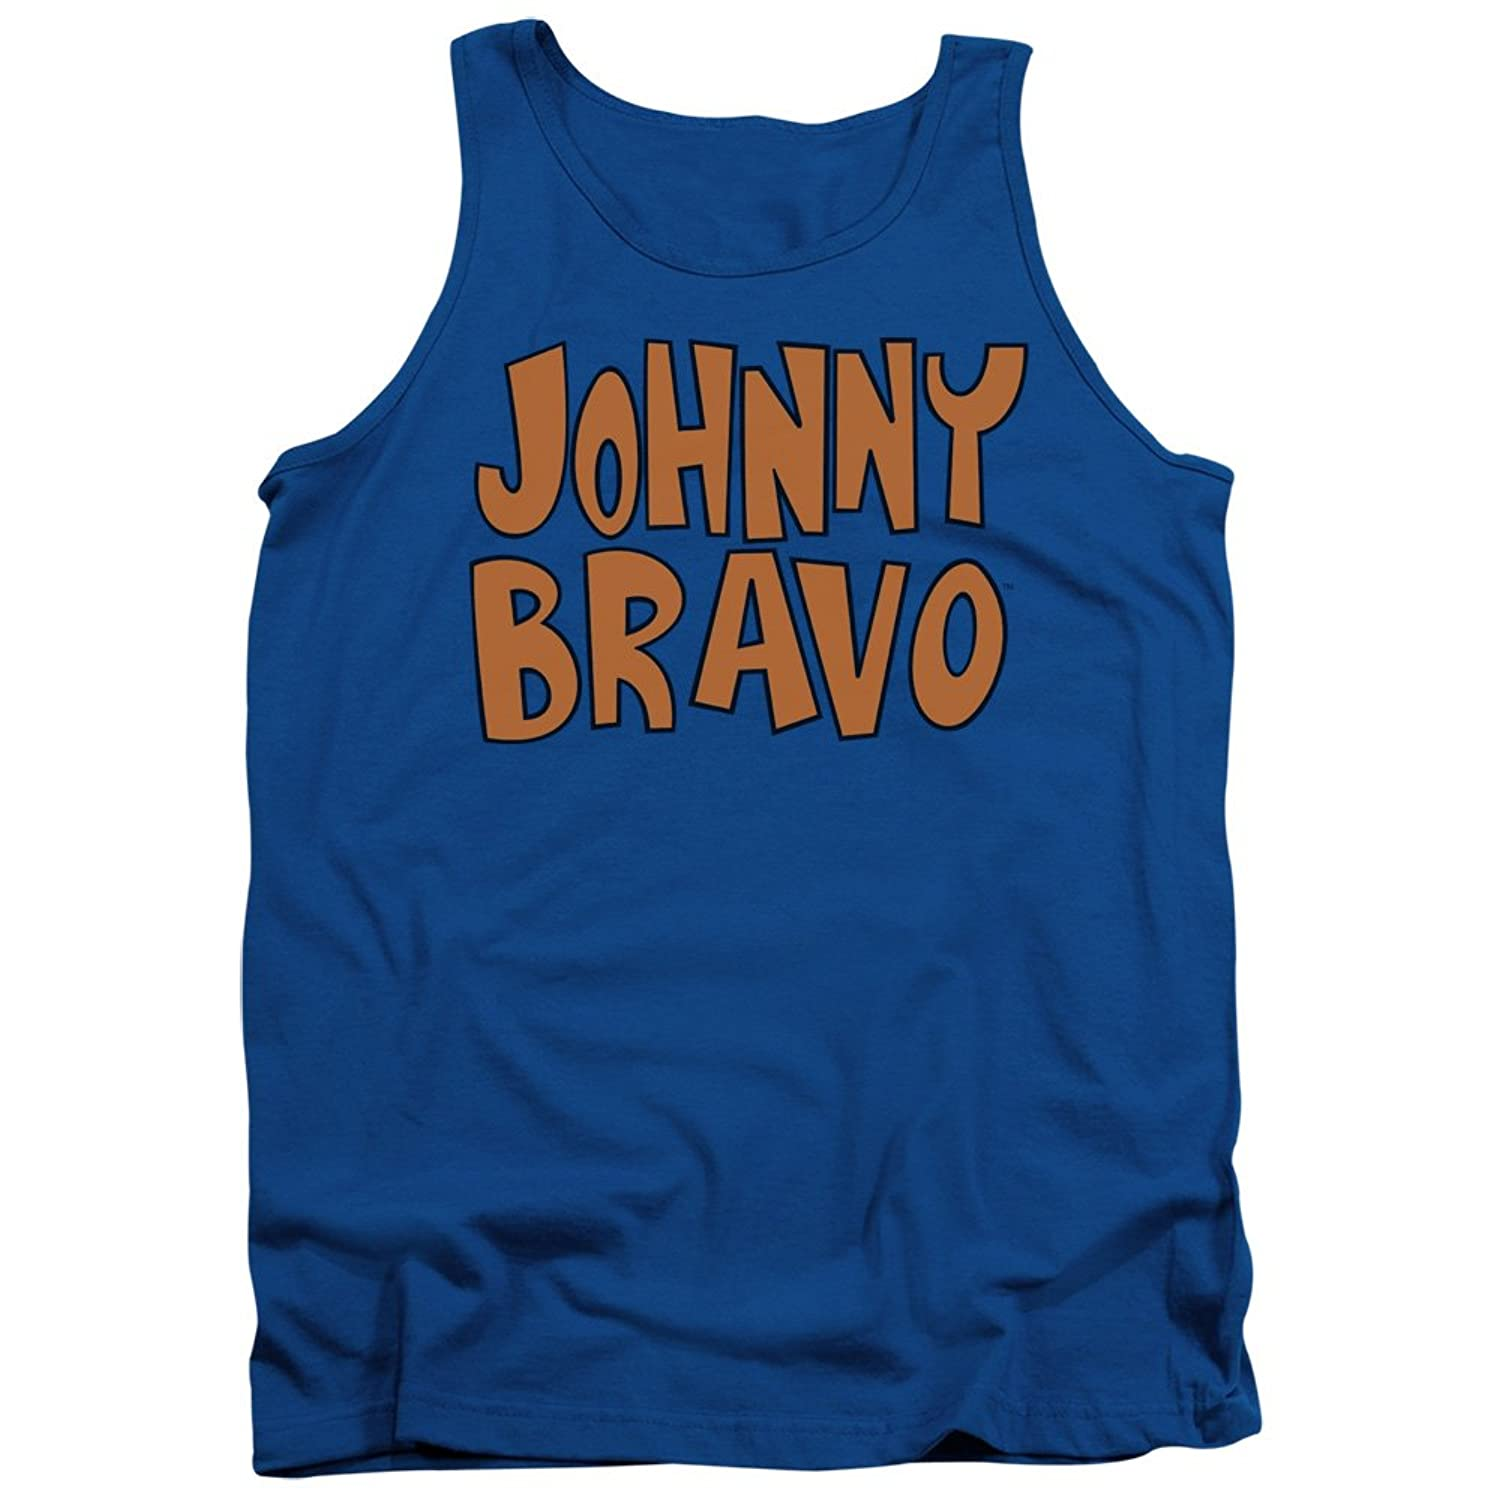 Johnny Bravo Cartoon Network Series Show Logo Adult Tank Top Shirt